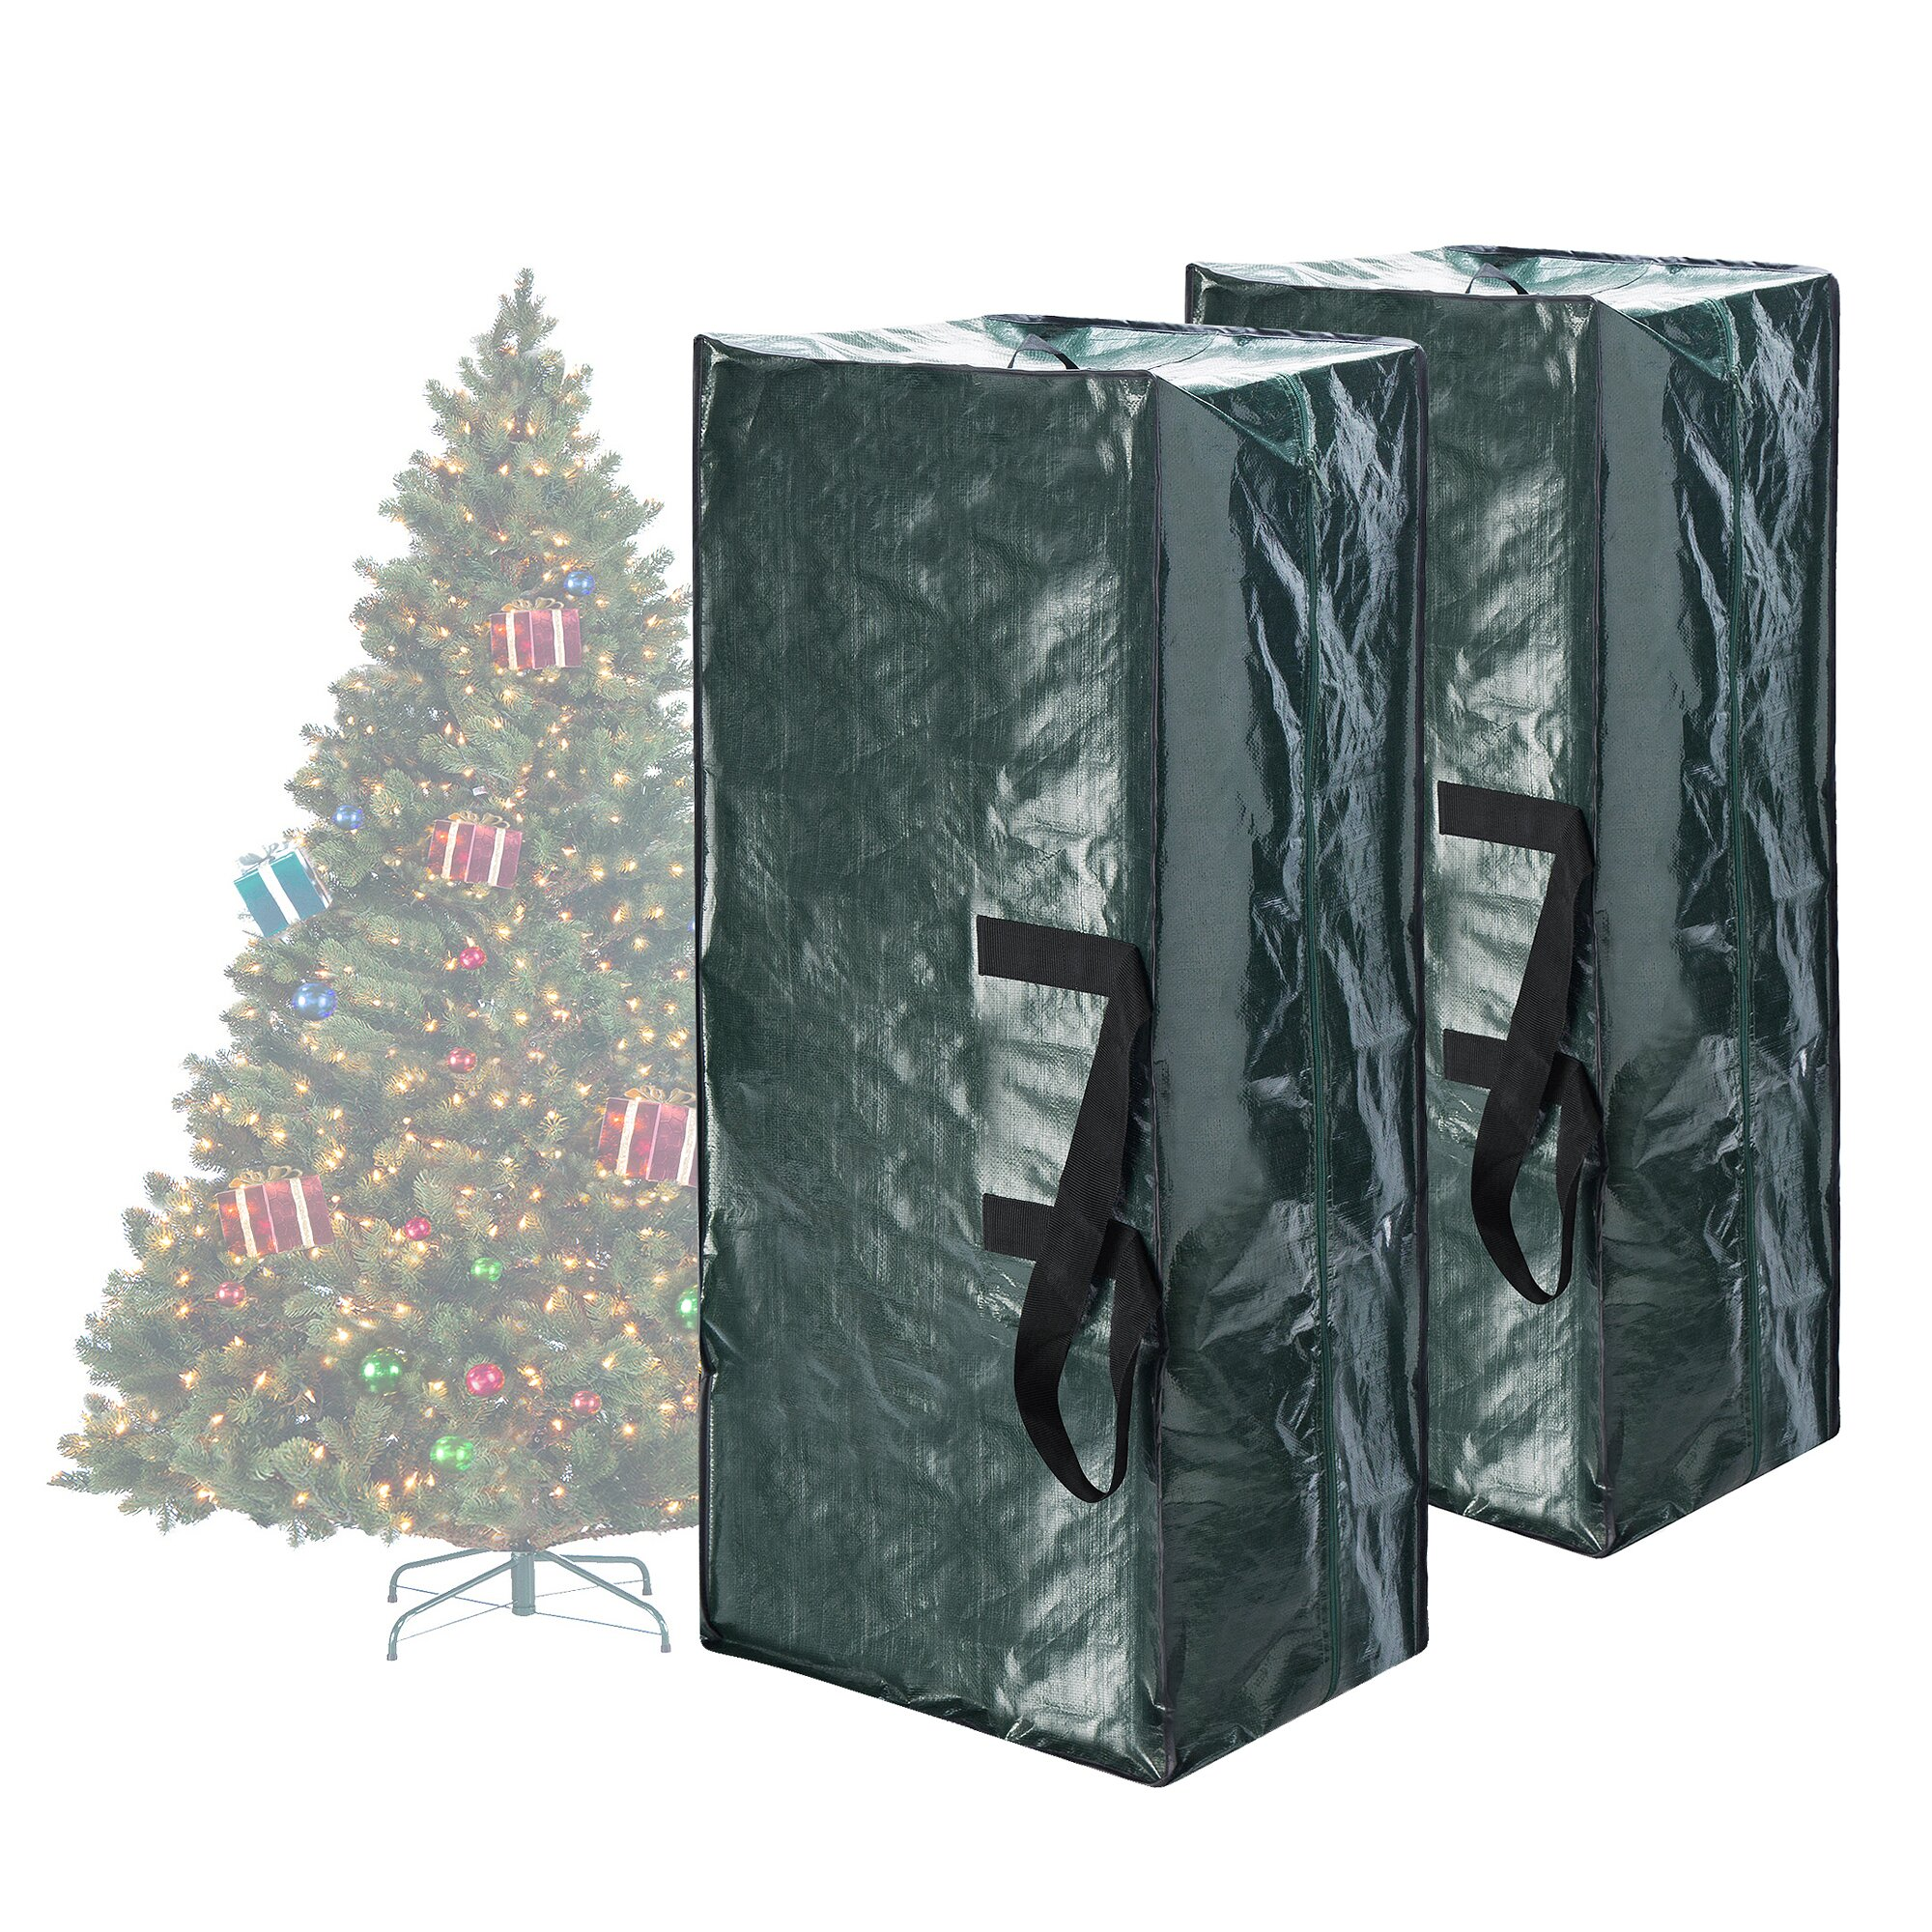 Storage bags for christmas trees - Elf Stor Premium Christmas Tree Storage Bag